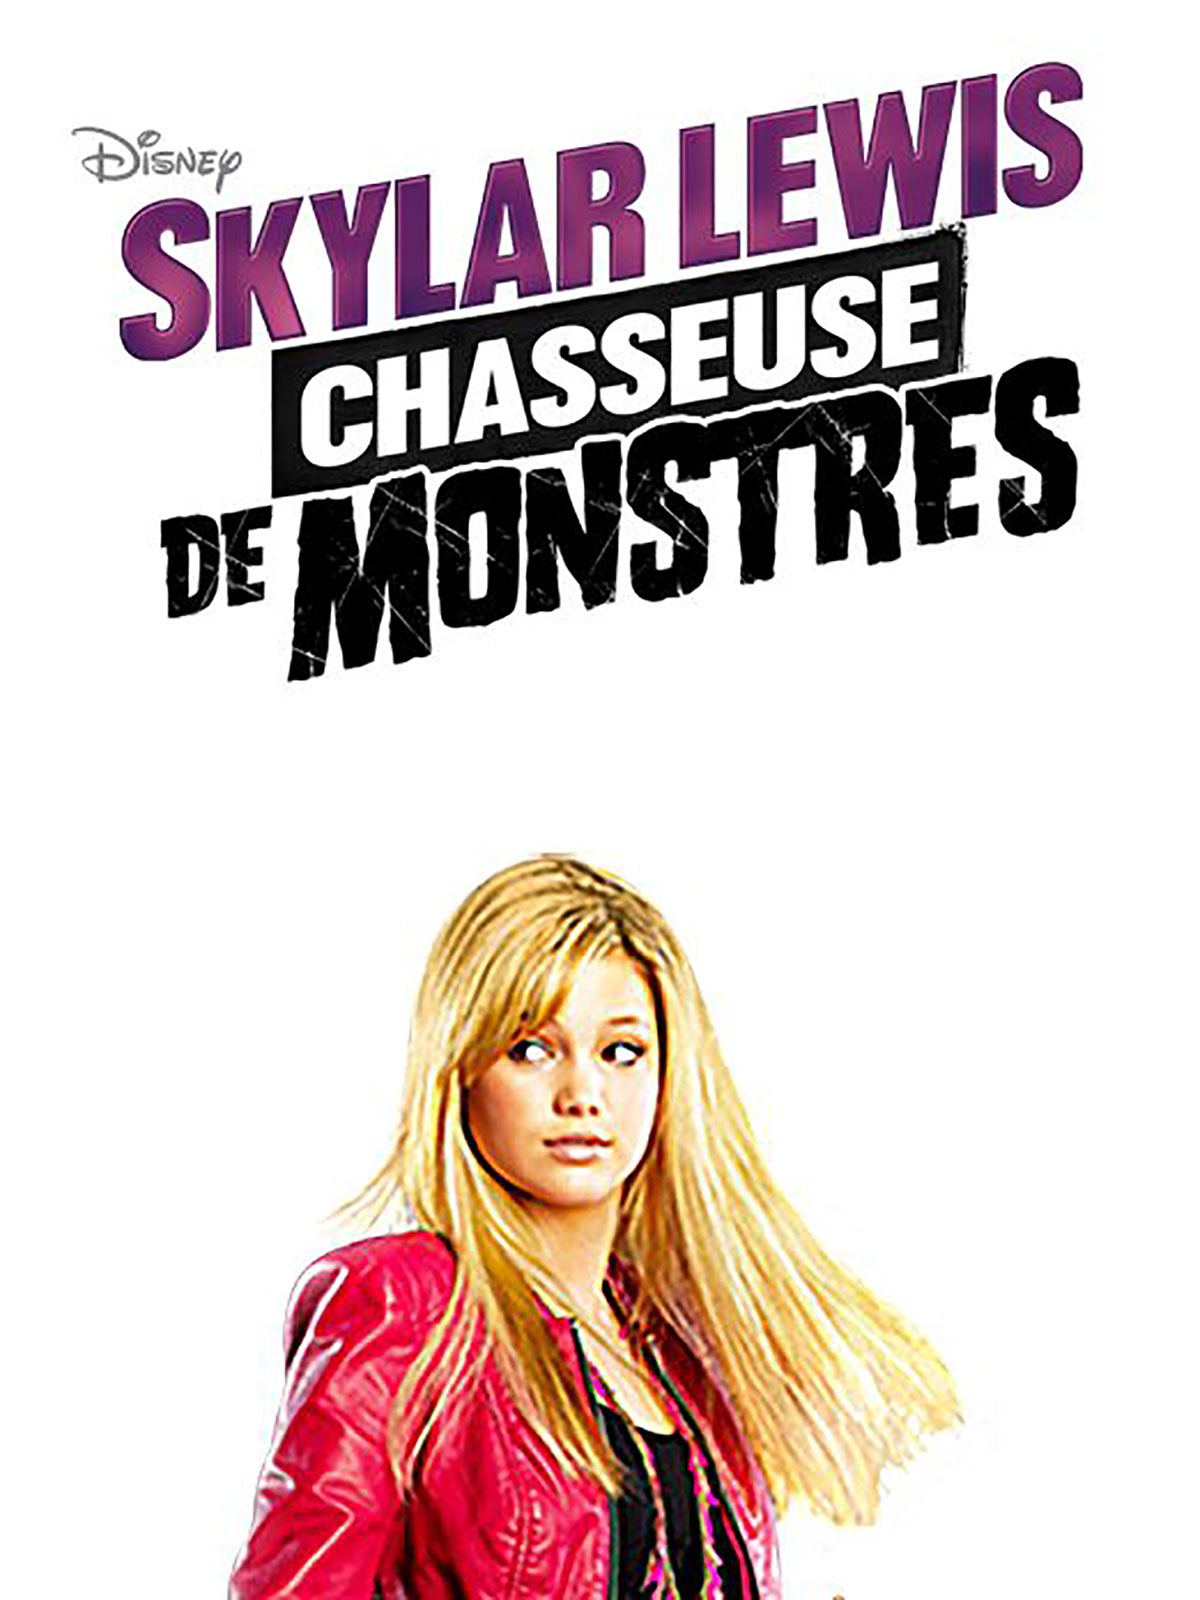 Affiche Poster skylar lewis girl monster disney channel